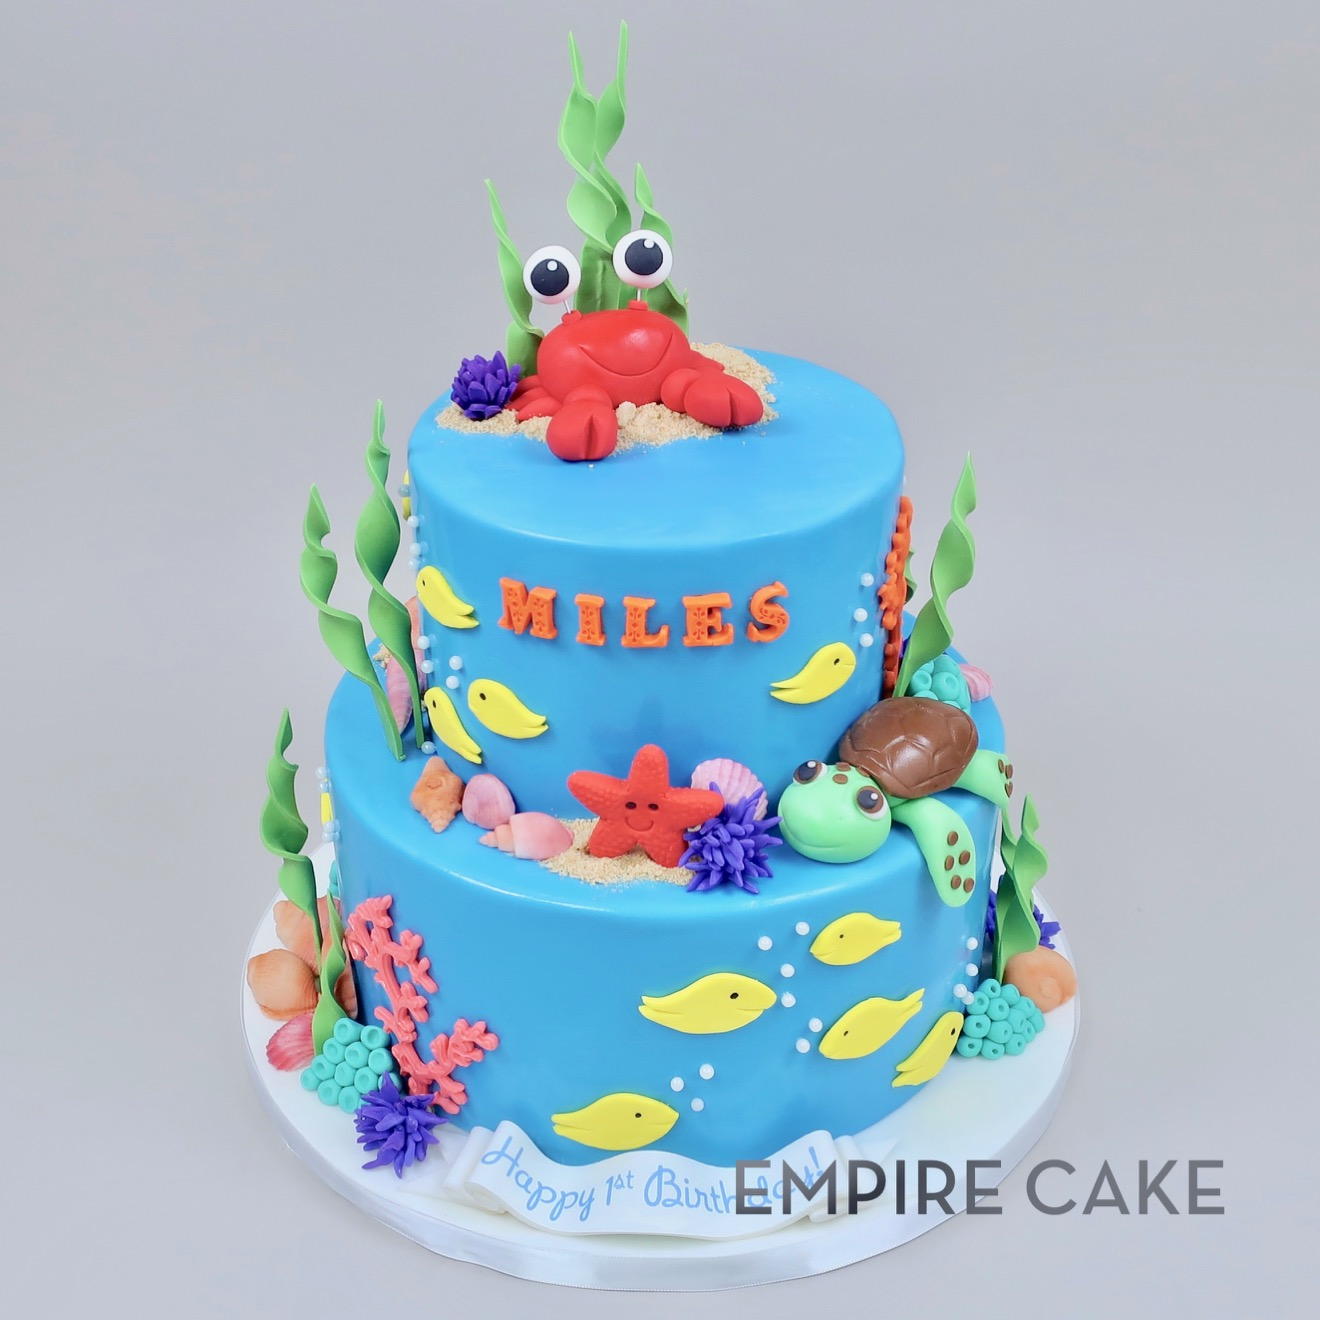 Tremendous Under The Sea With Crab And Turtle Empire Cake Funny Birthday Cards Online Necthendildamsfinfo